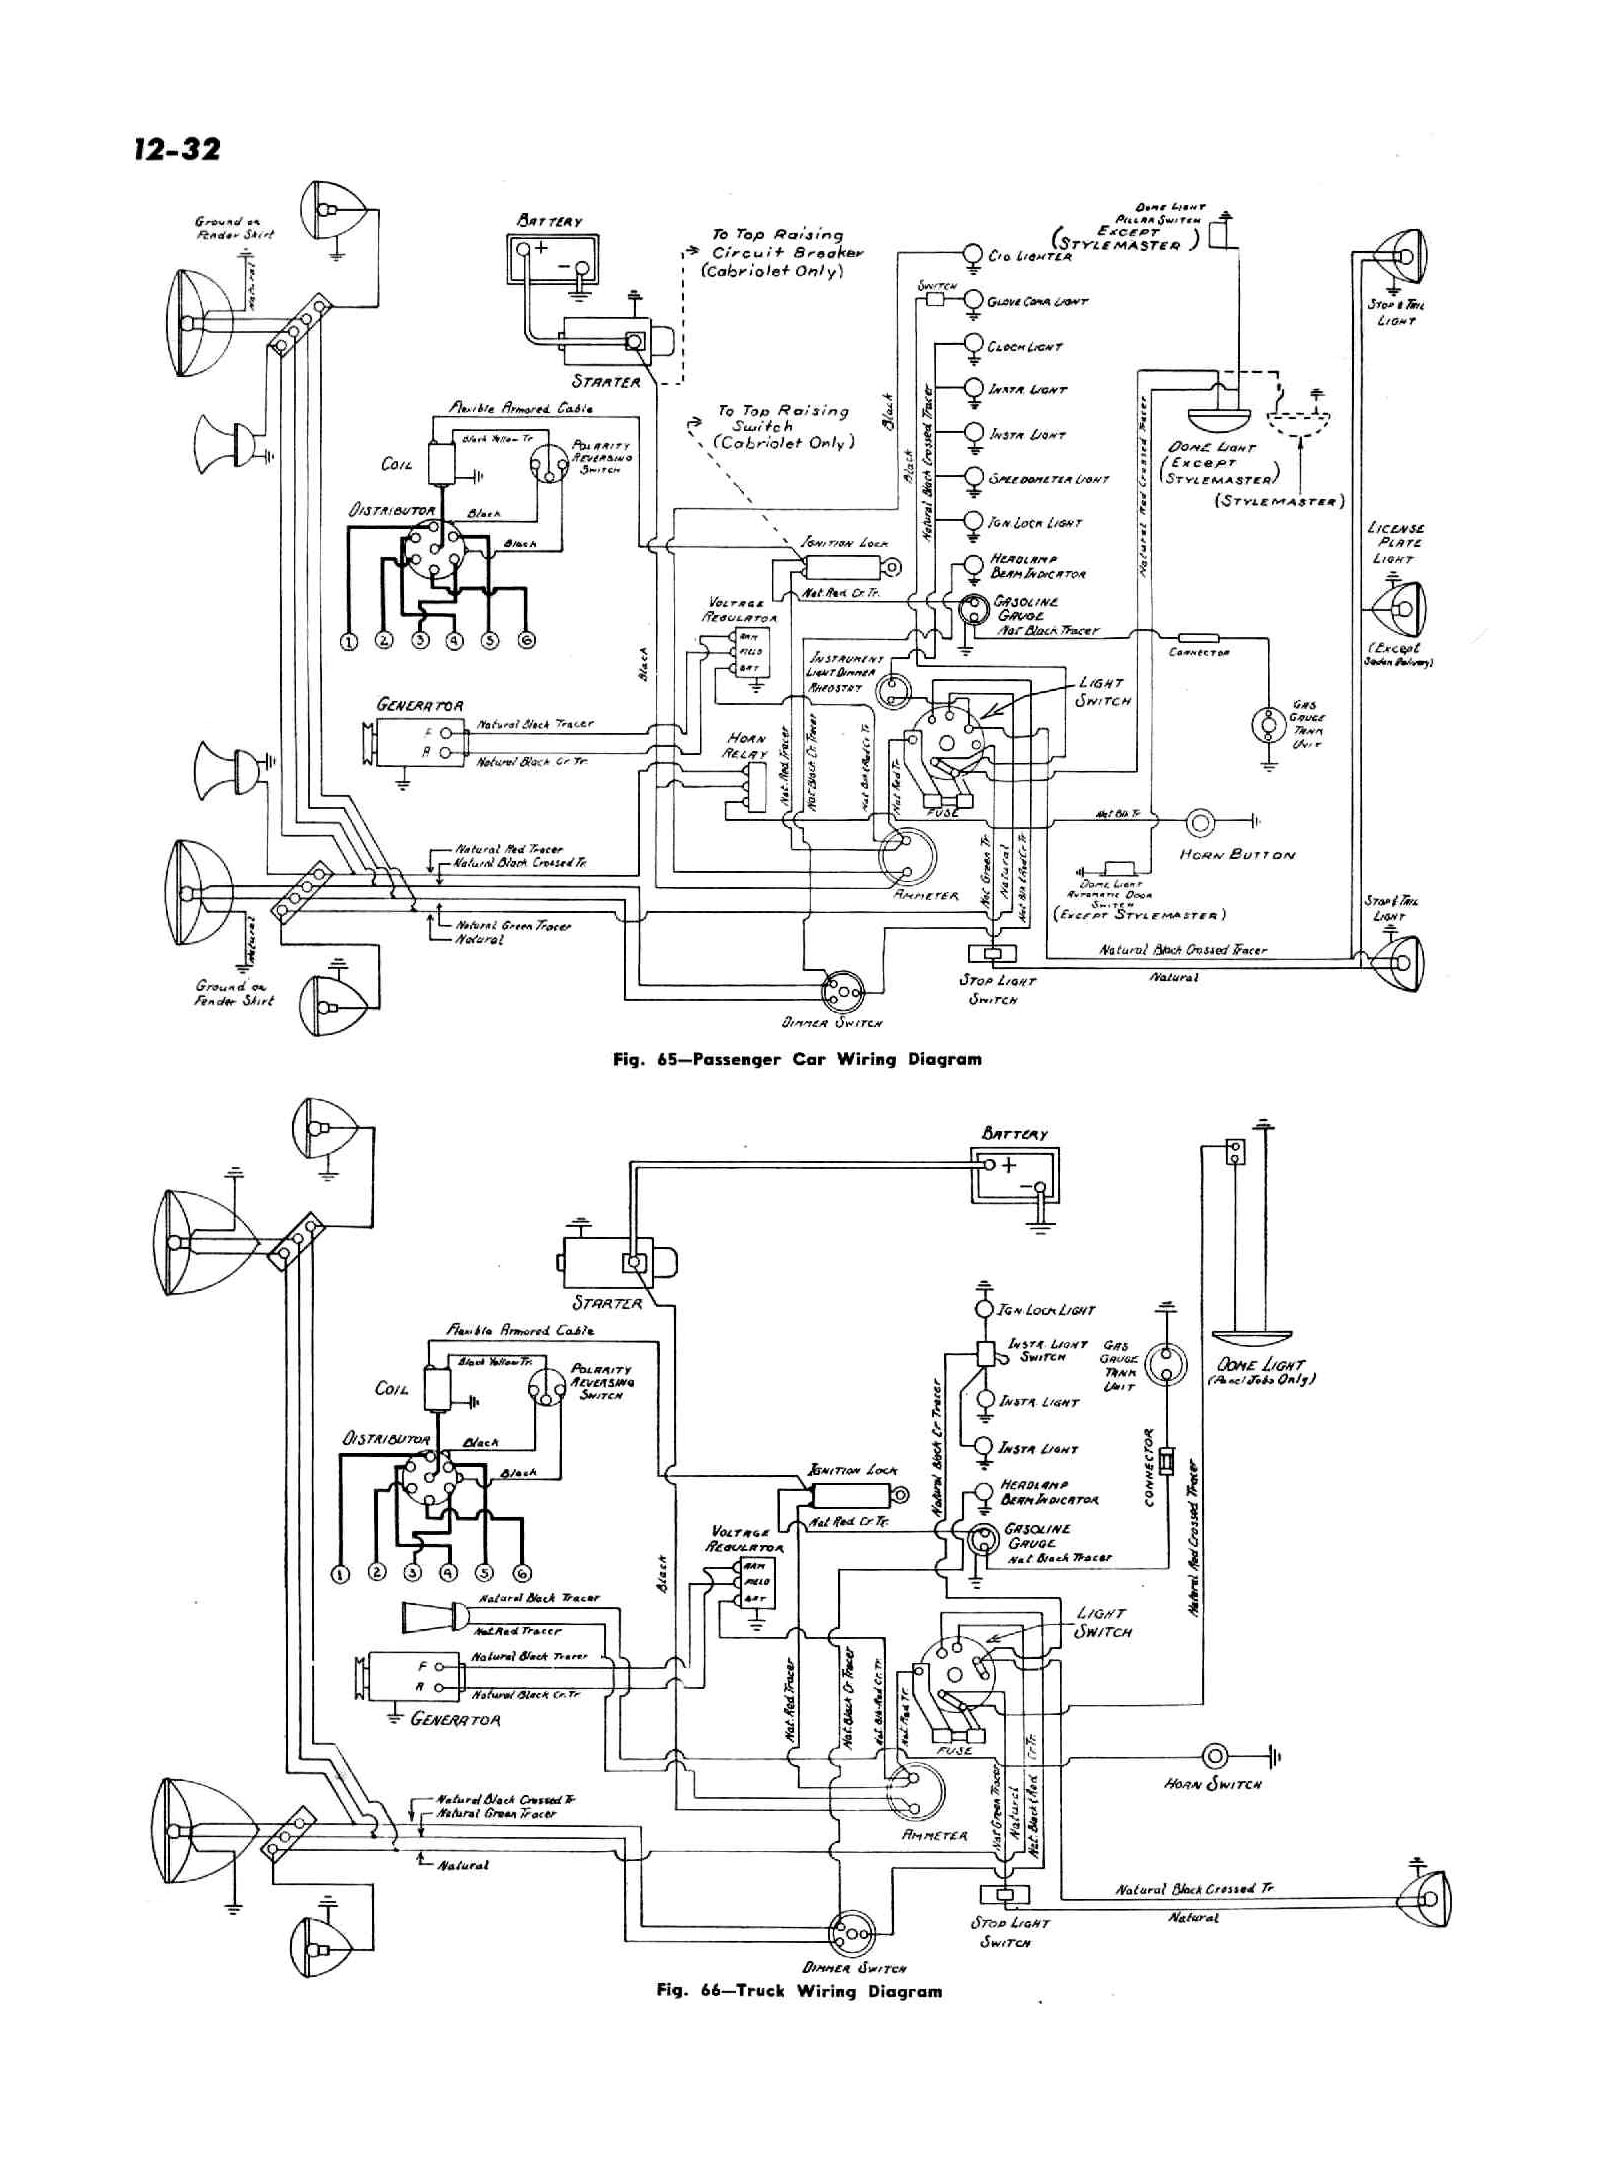 1960 dodge wiring diagram simple wiring diagram schema1953 dodge wiring diagram wiring schematic dodge exhaust diagrams 1960 dodge wiring diagram